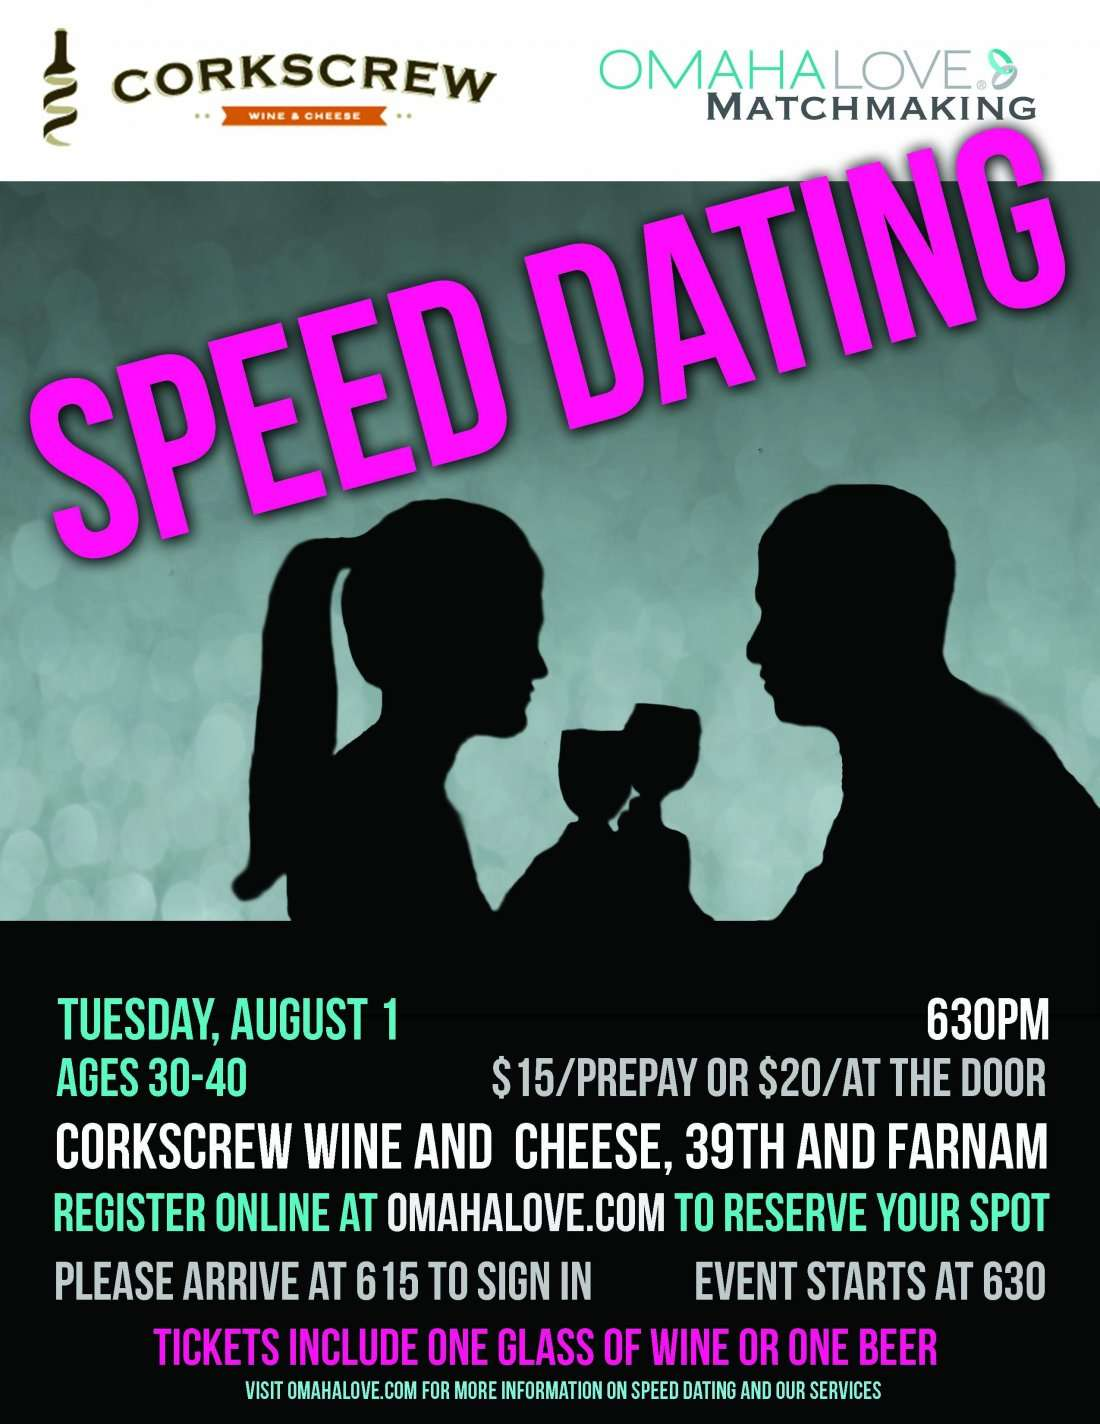 Speed dating at work